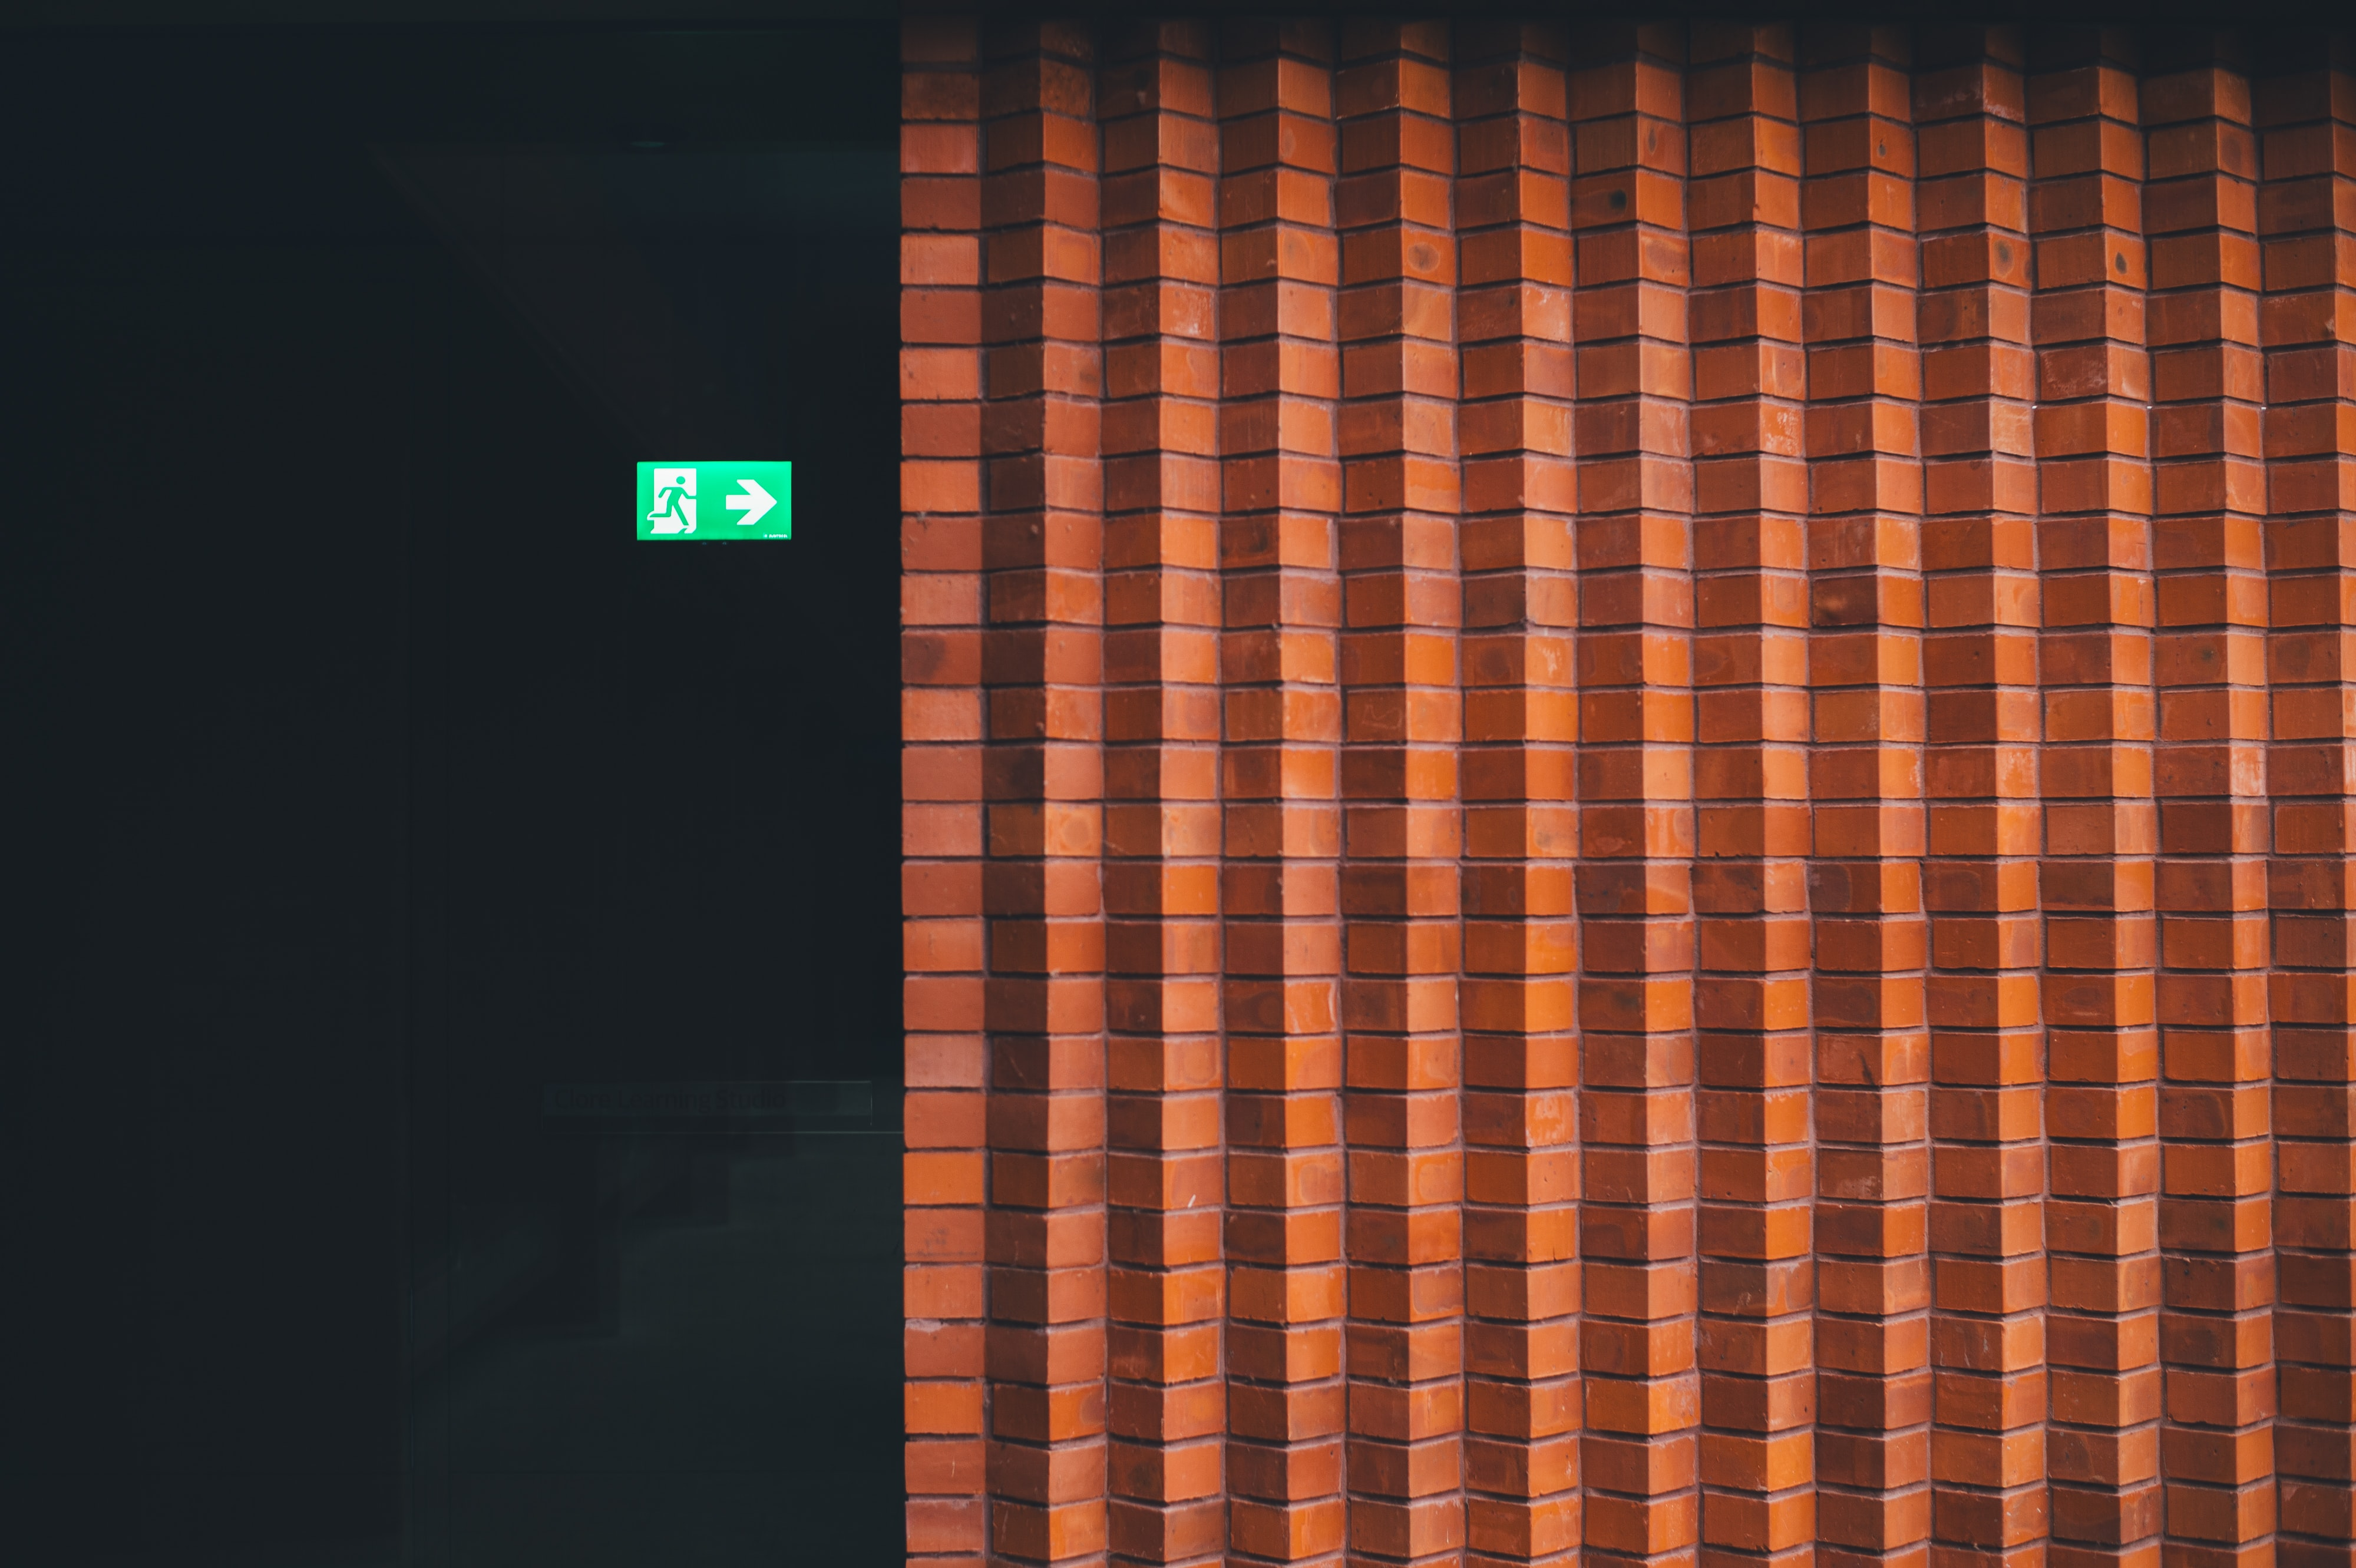 Small green exit sign pointing towards brick wall at Whitworth Art Gallery